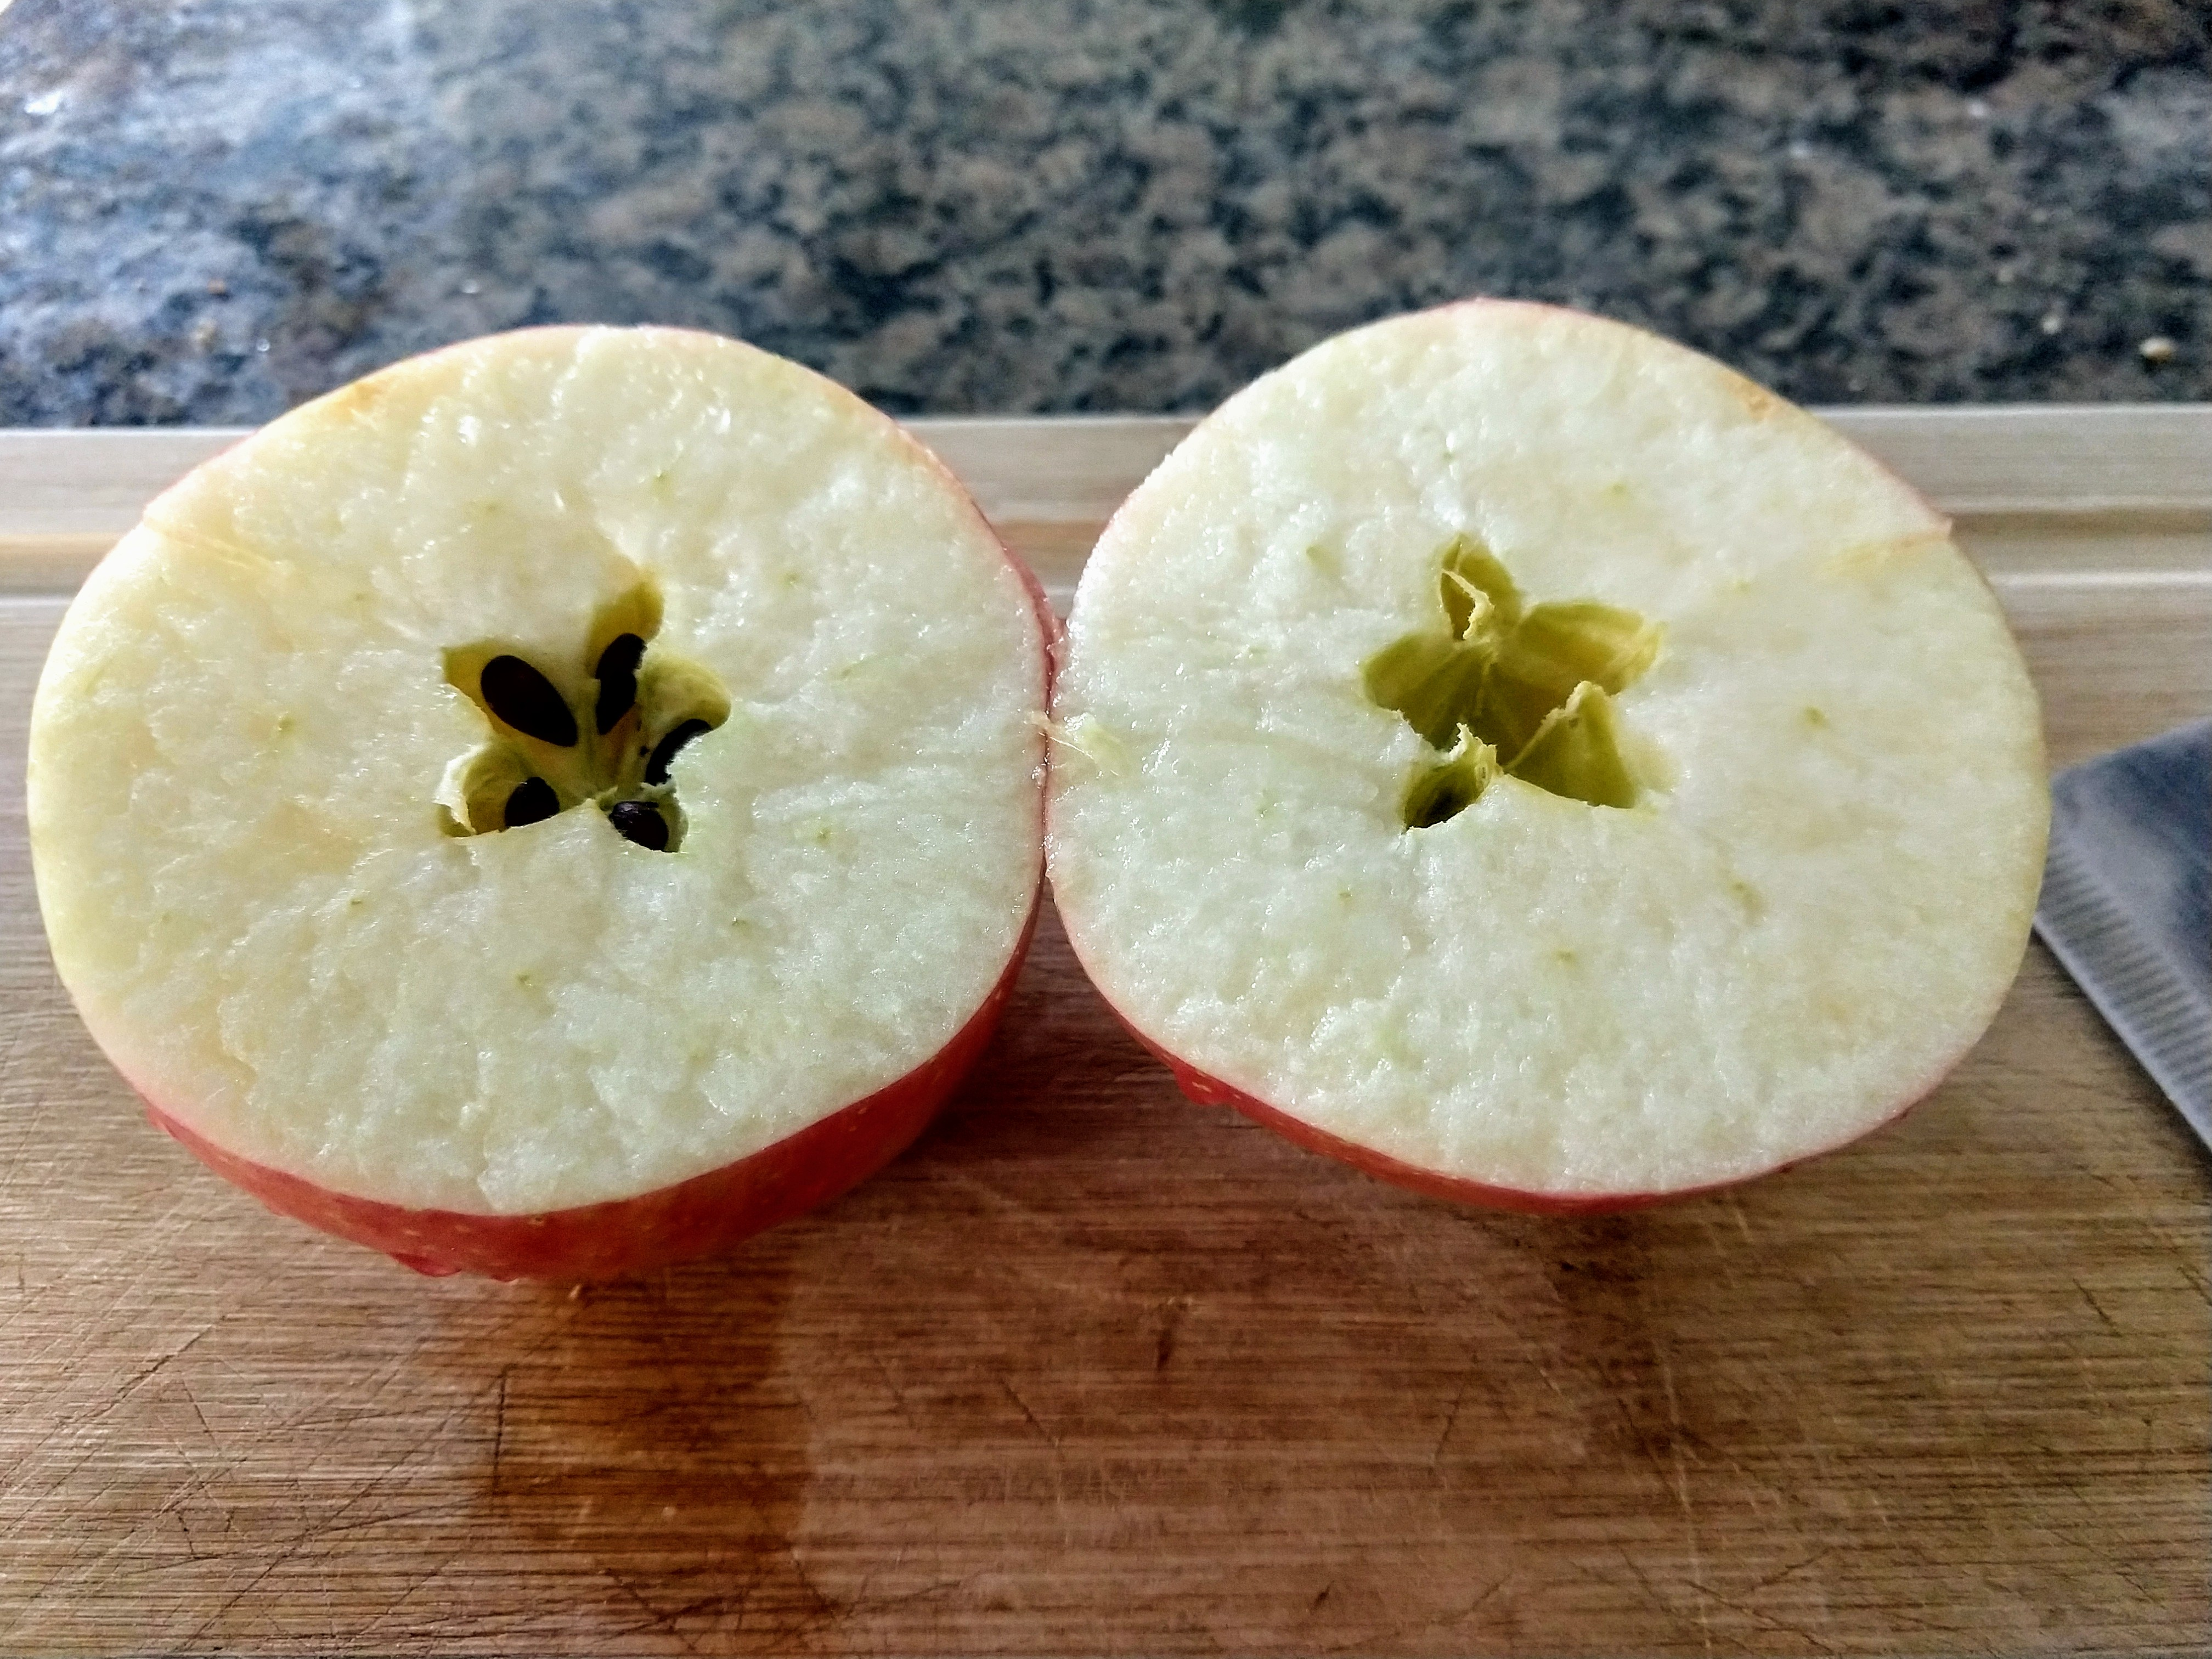 Apple dissecting